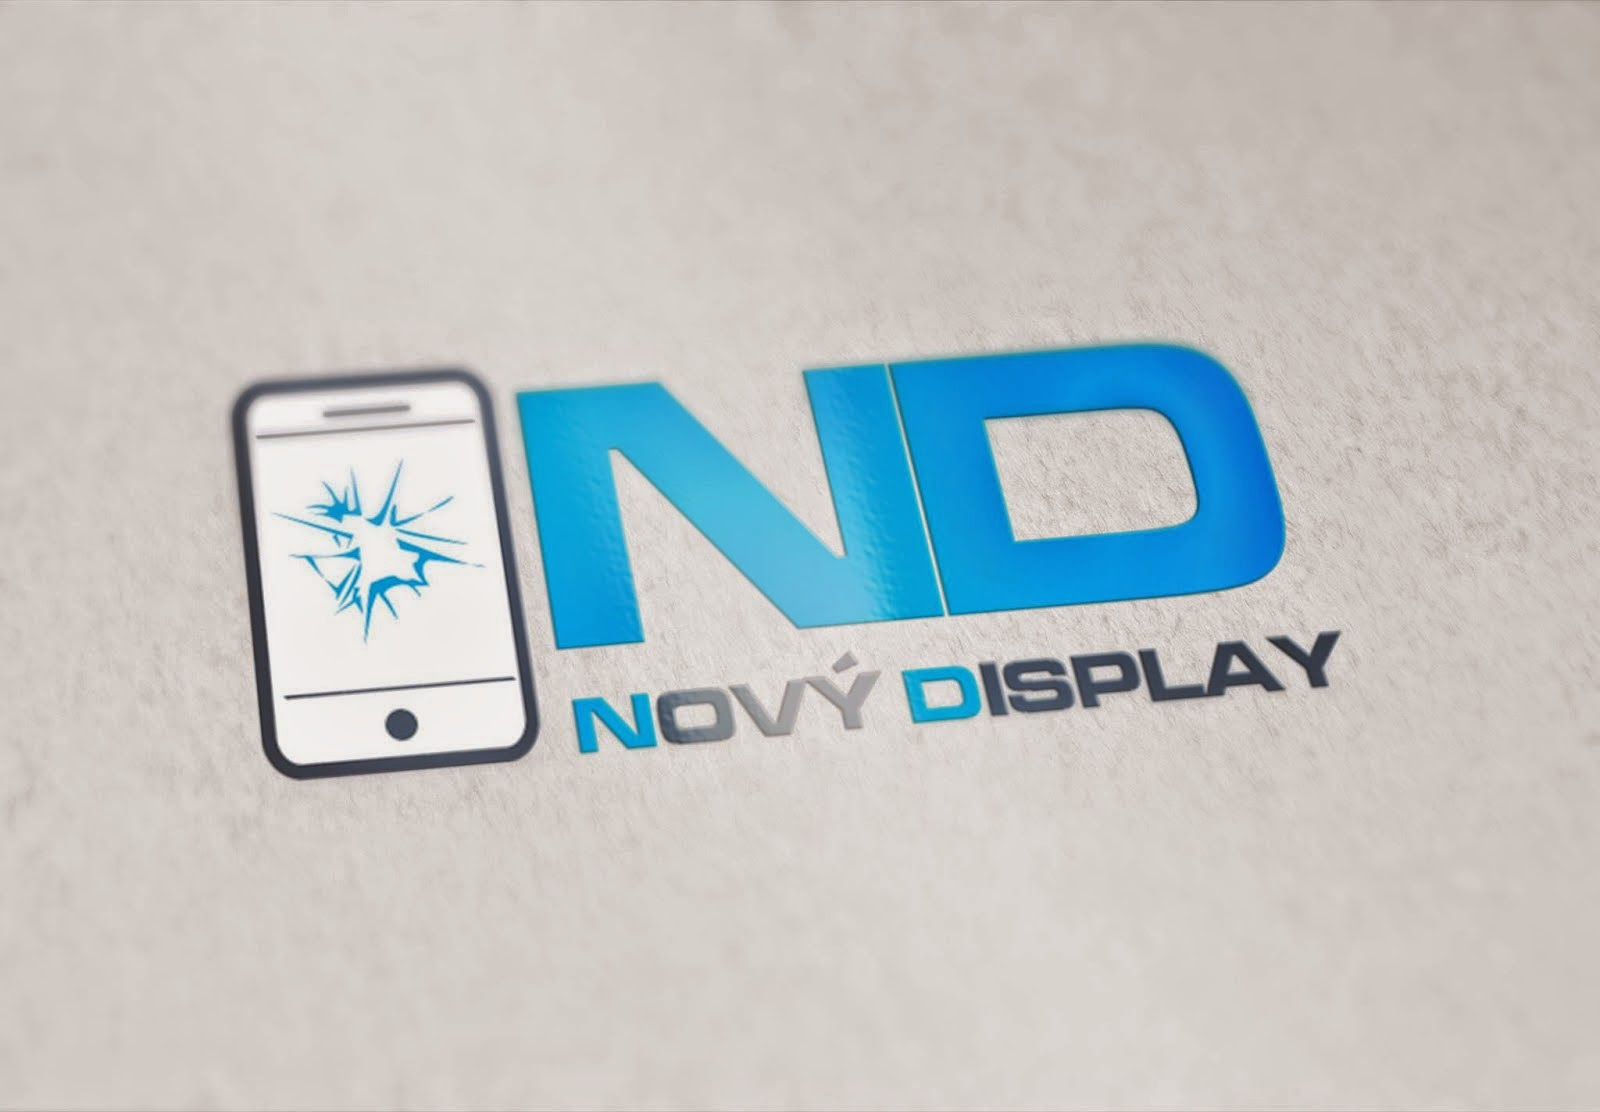 NOVÝ DISPLAY